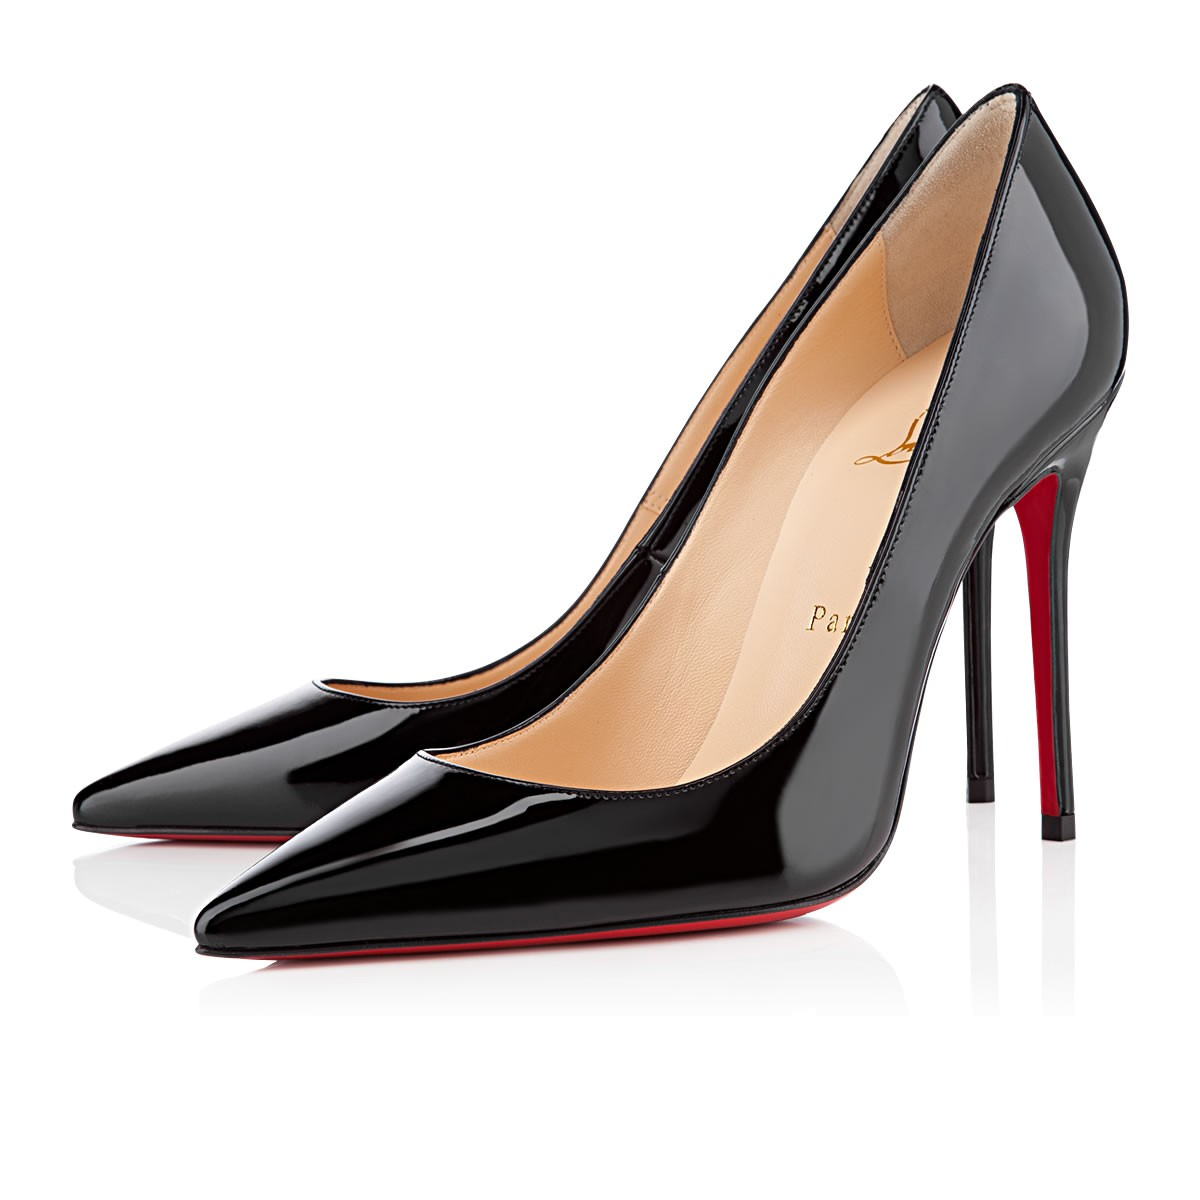 Christian Louboutin Women's 'Decollette' Pointy Toe Pump Rjj7HT